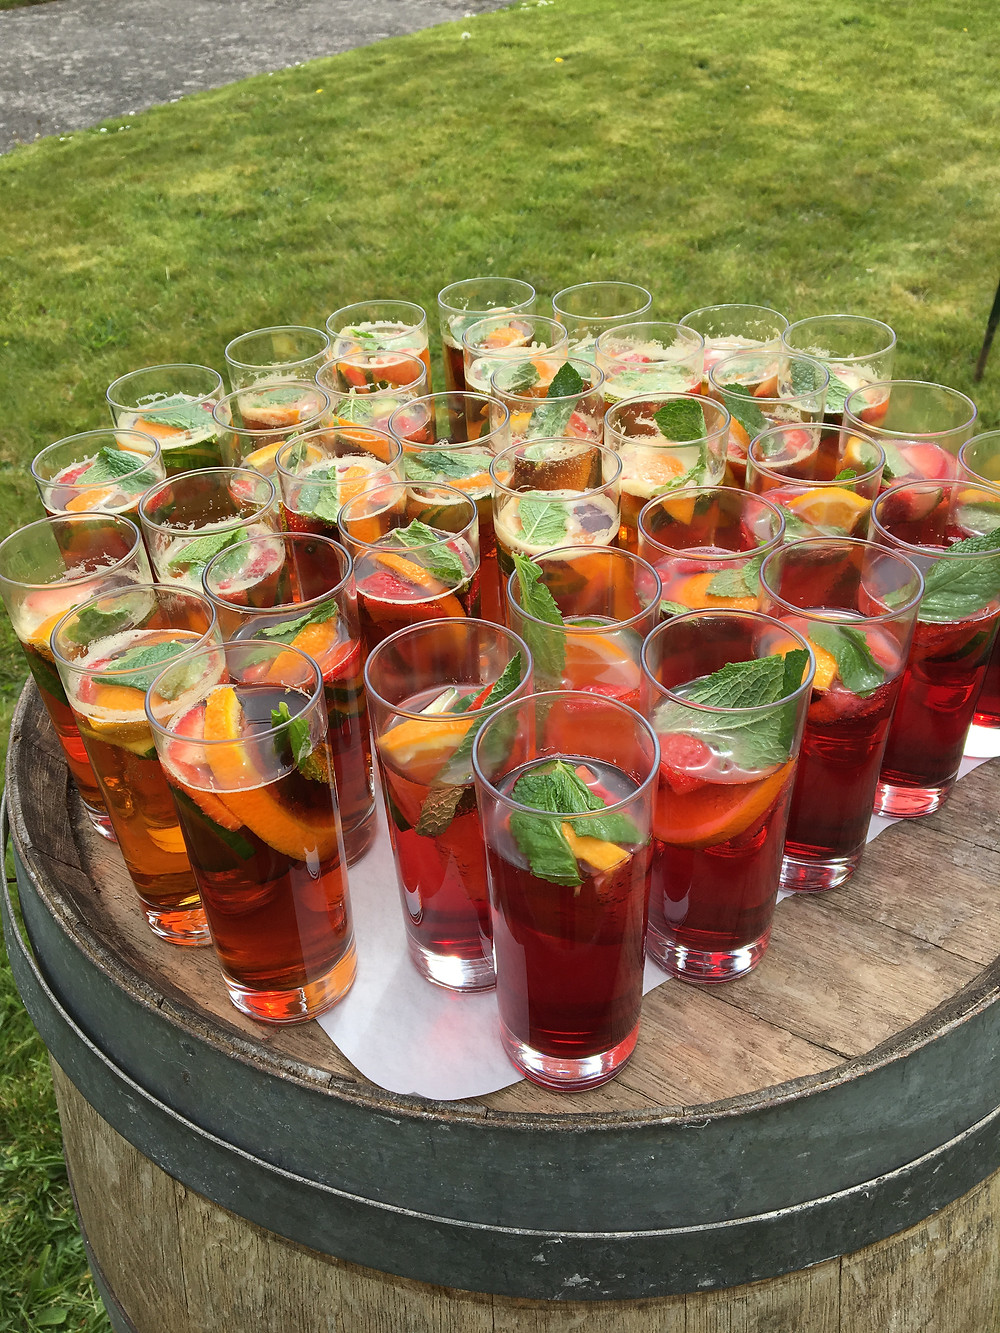 Wedding, Pimms and Lemonade, Cornwall, Cornish, Outside Catering, Events, Parties, Della Events.